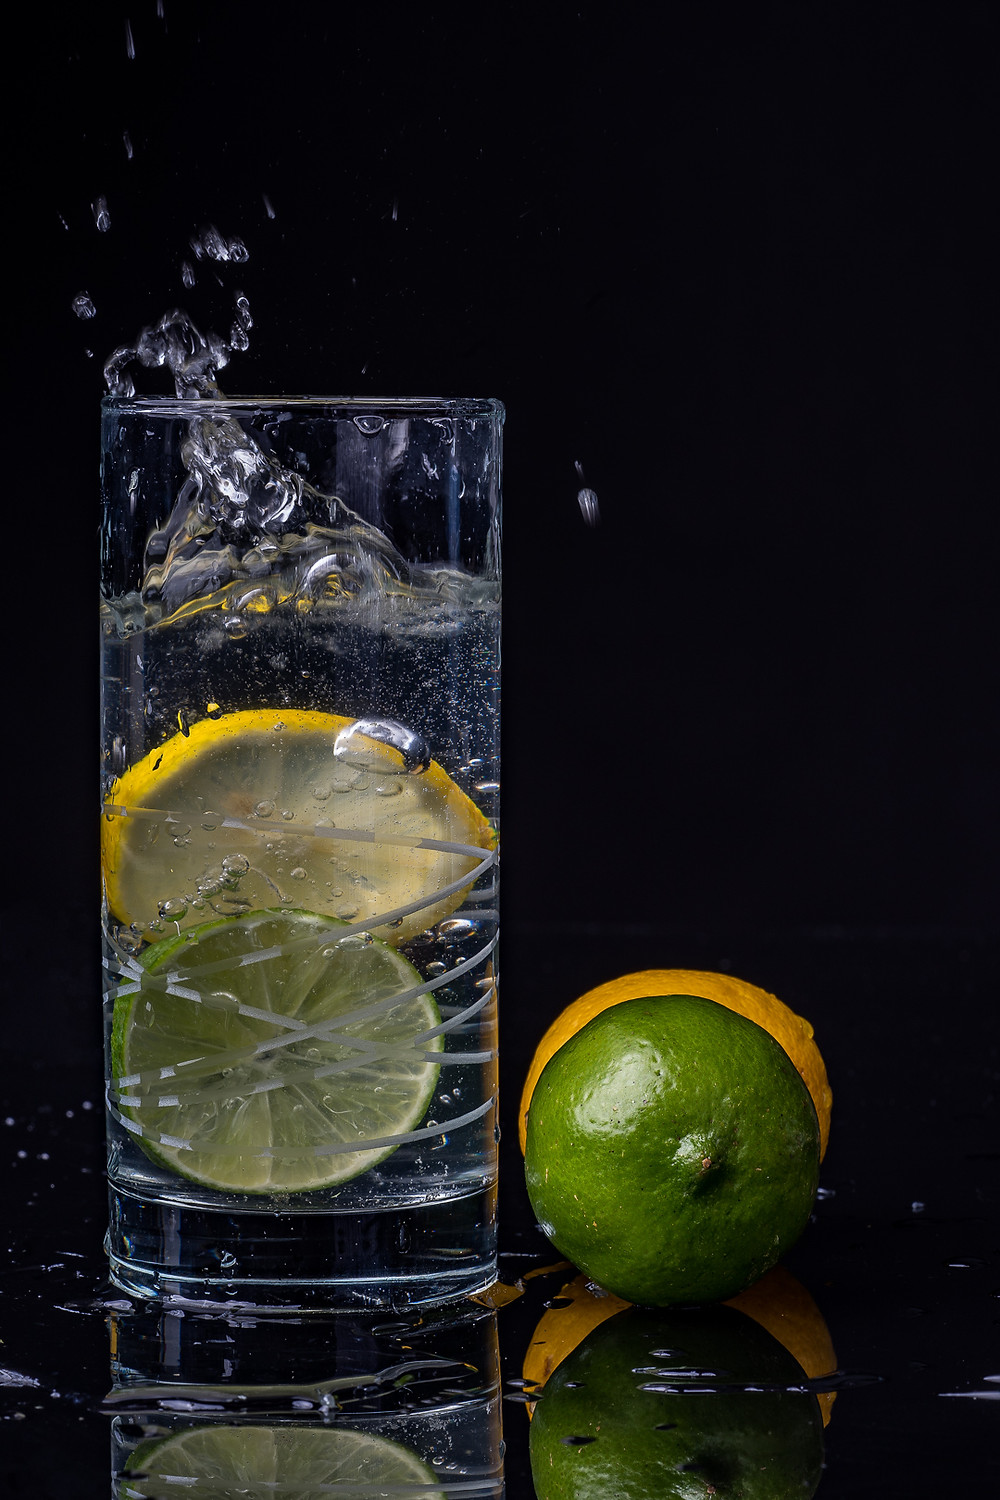 lemon limes splashed in glass of water